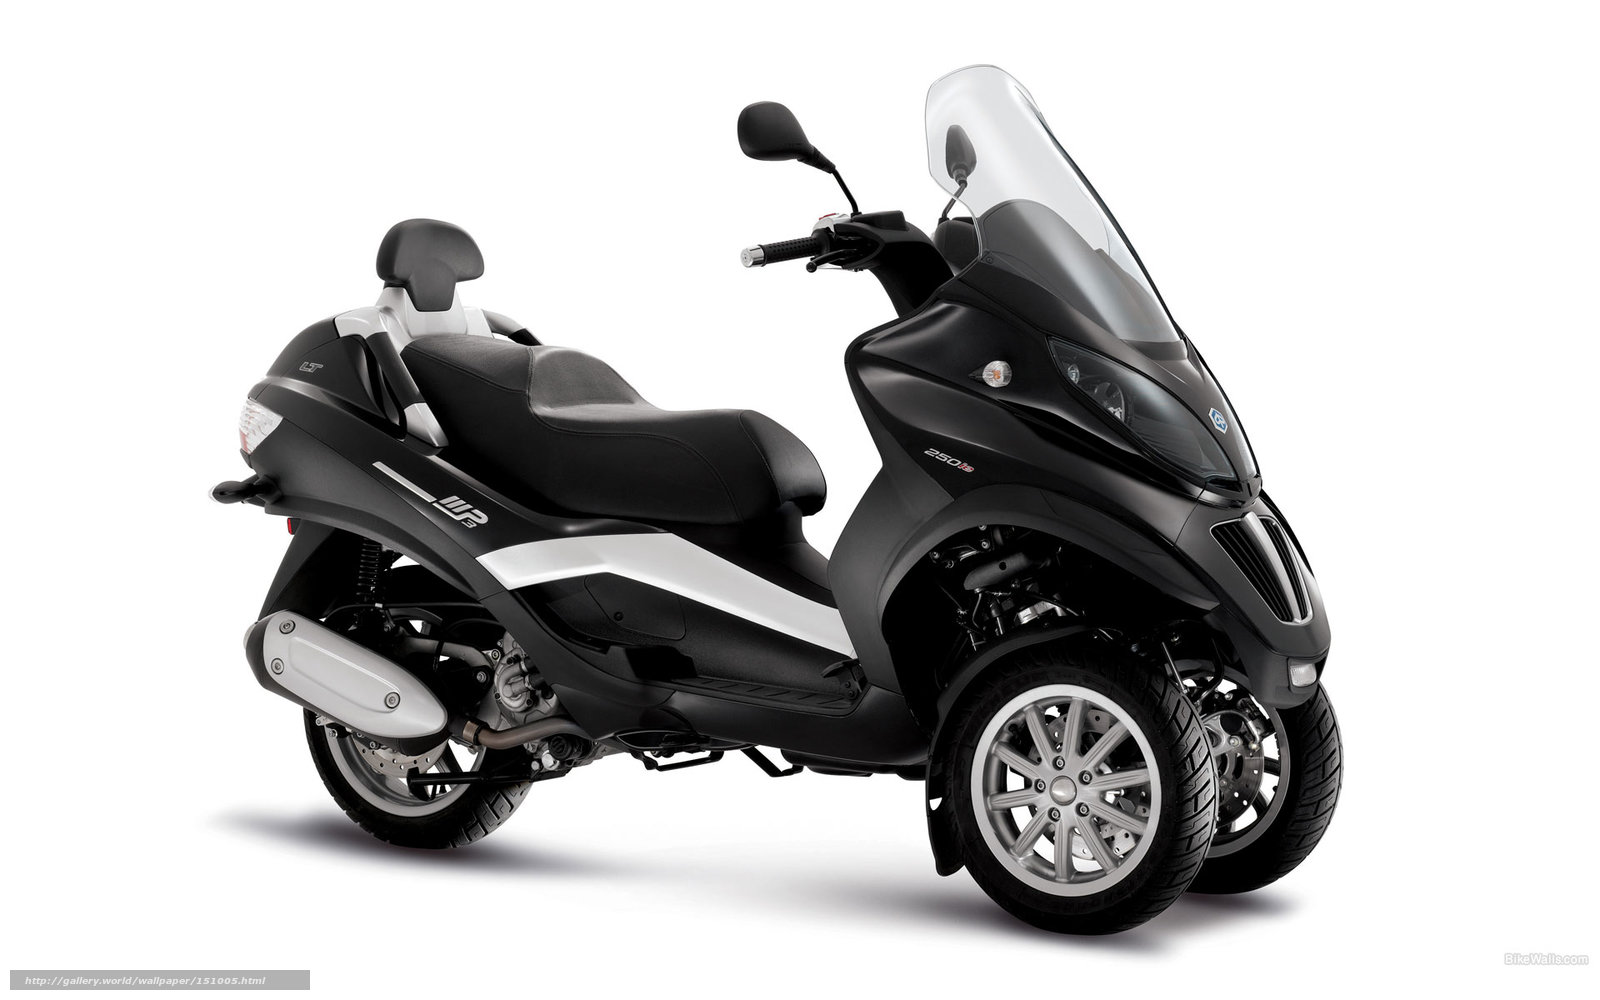 download wallpaper piaggio mp3 mp3 lt 250 mp3 lt 250 2009 free desktop wallpaper in the. Black Bedroom Furniture Sets. Home Design Ideas